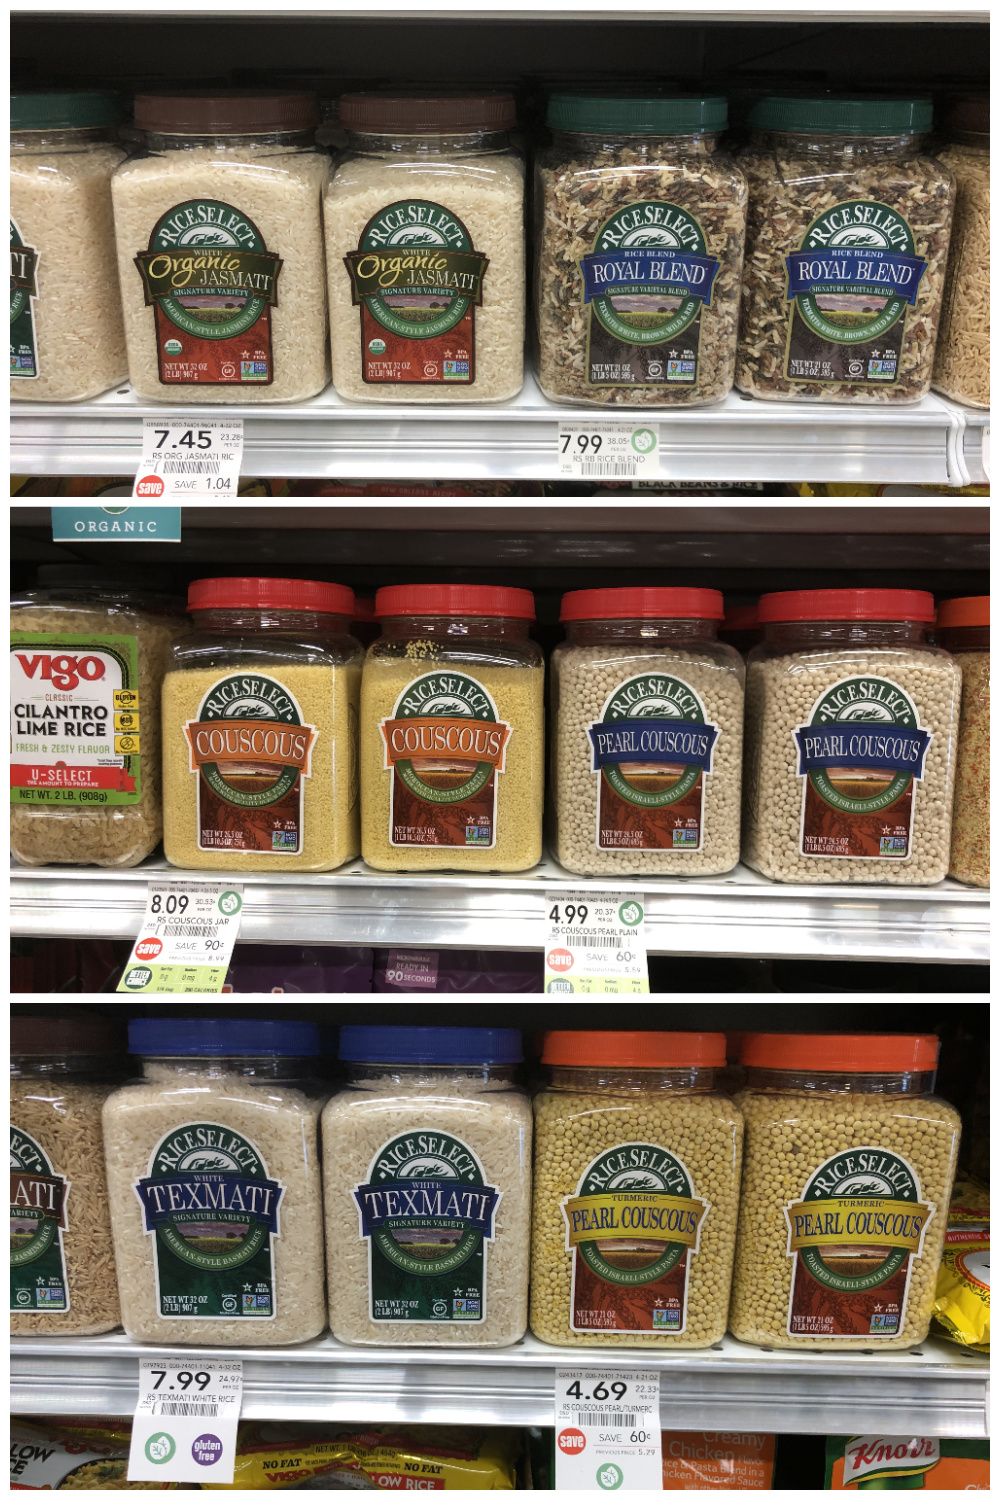 Try My Parmesan Rice Cakes - Save $2 On RiceSelect Products At Publix! on I Heart Publix 2